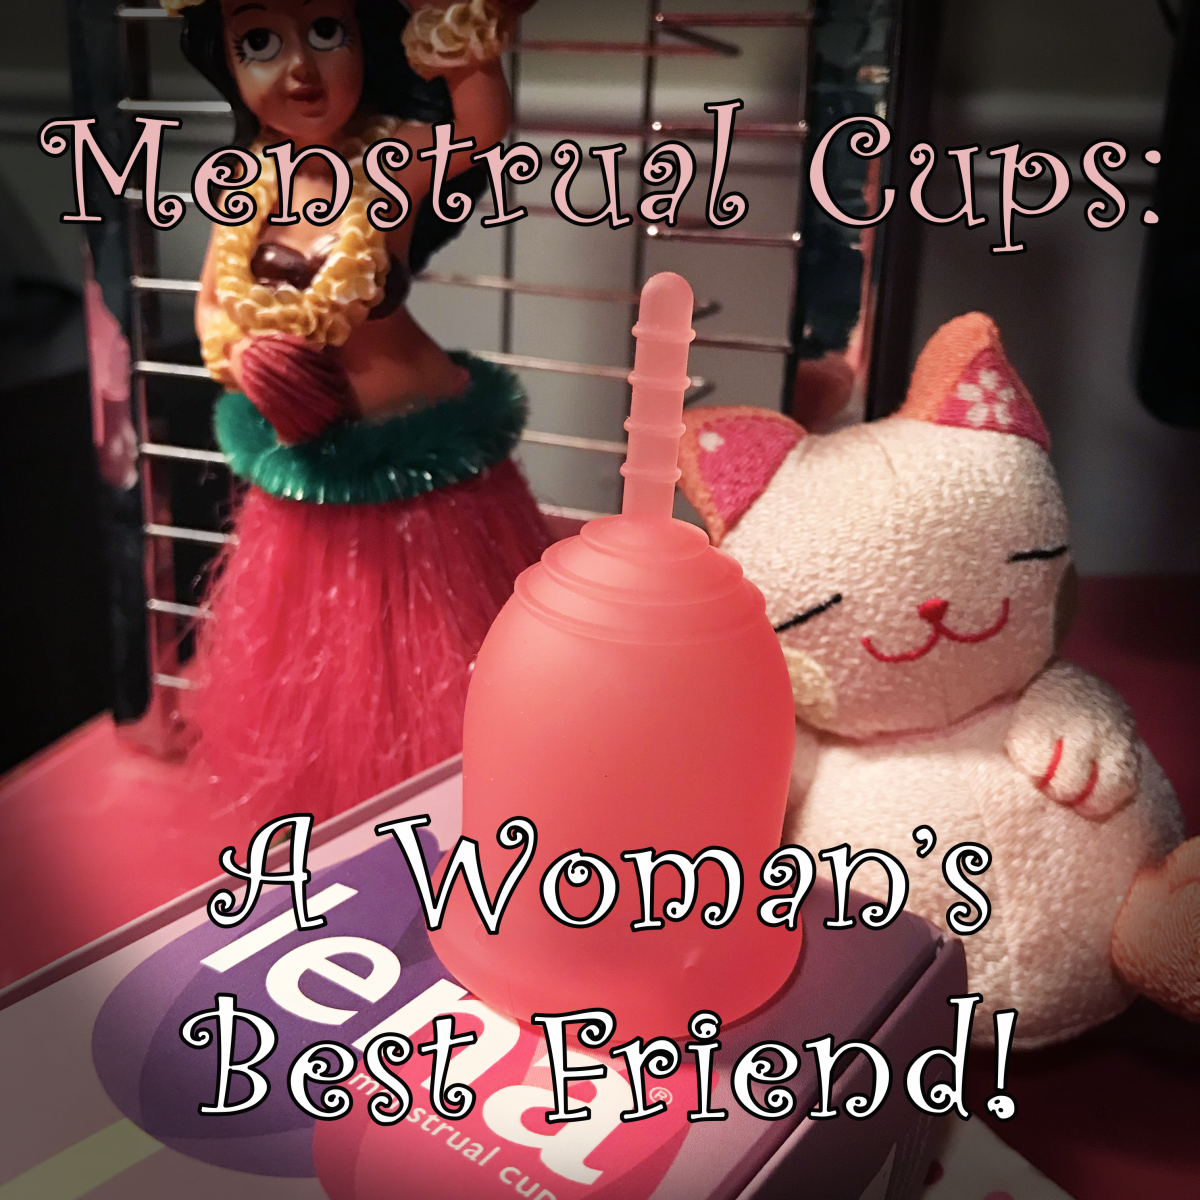 Menstrual cups make that time of the month much more bearable.